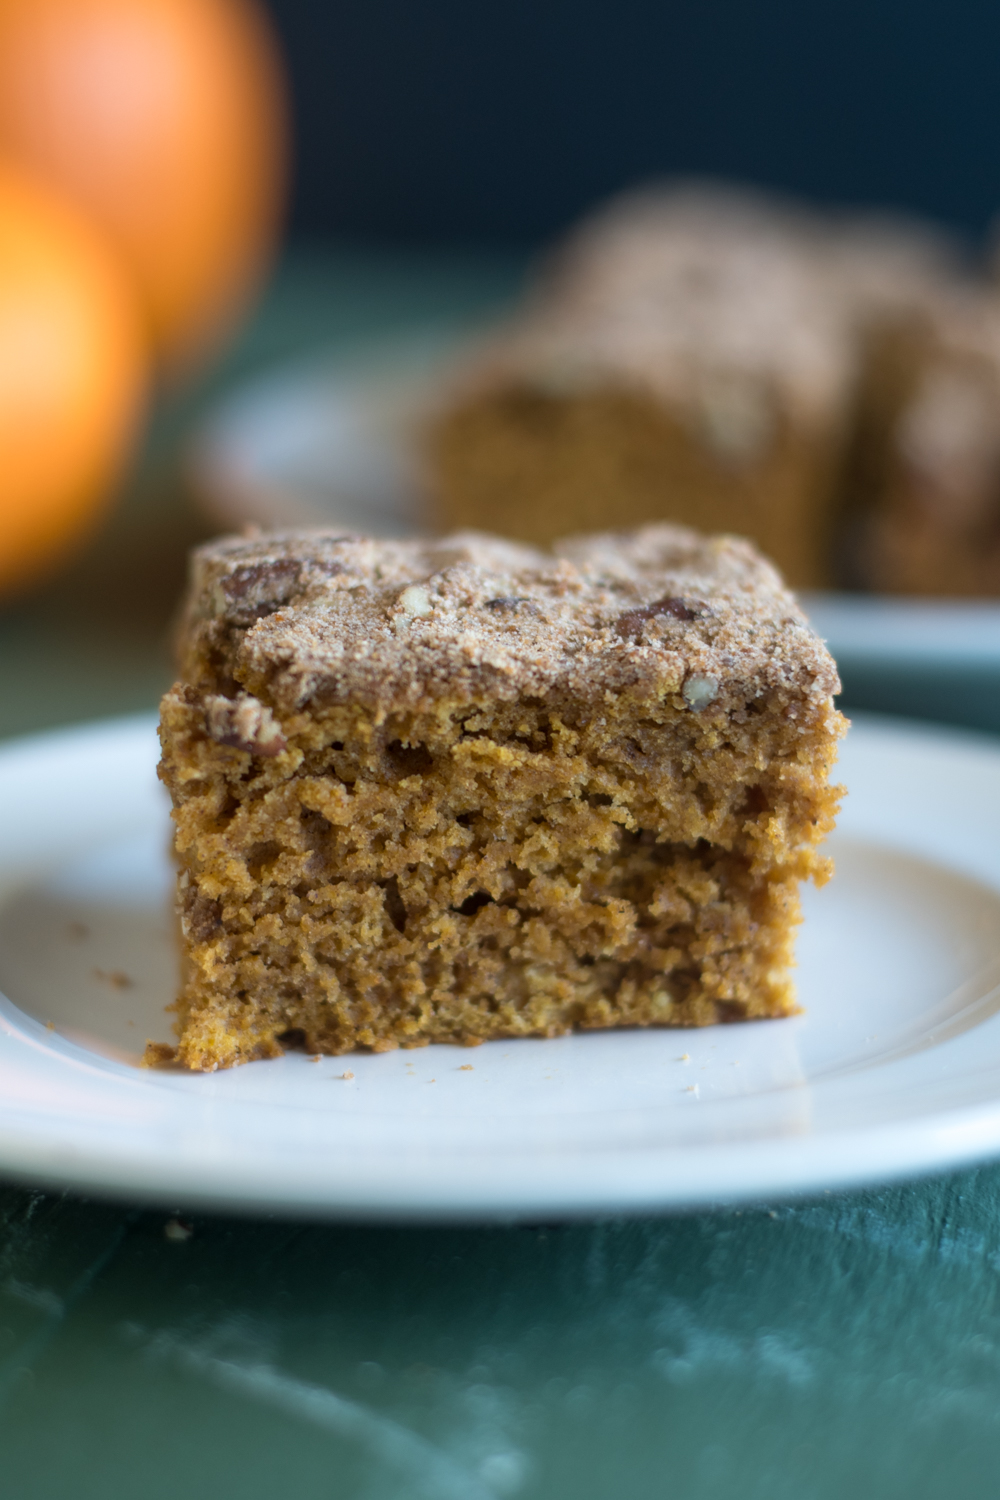 This Vegan Pumpkin Cake topped with a pecan streusel is perfect for fall and the upcoming holidays.